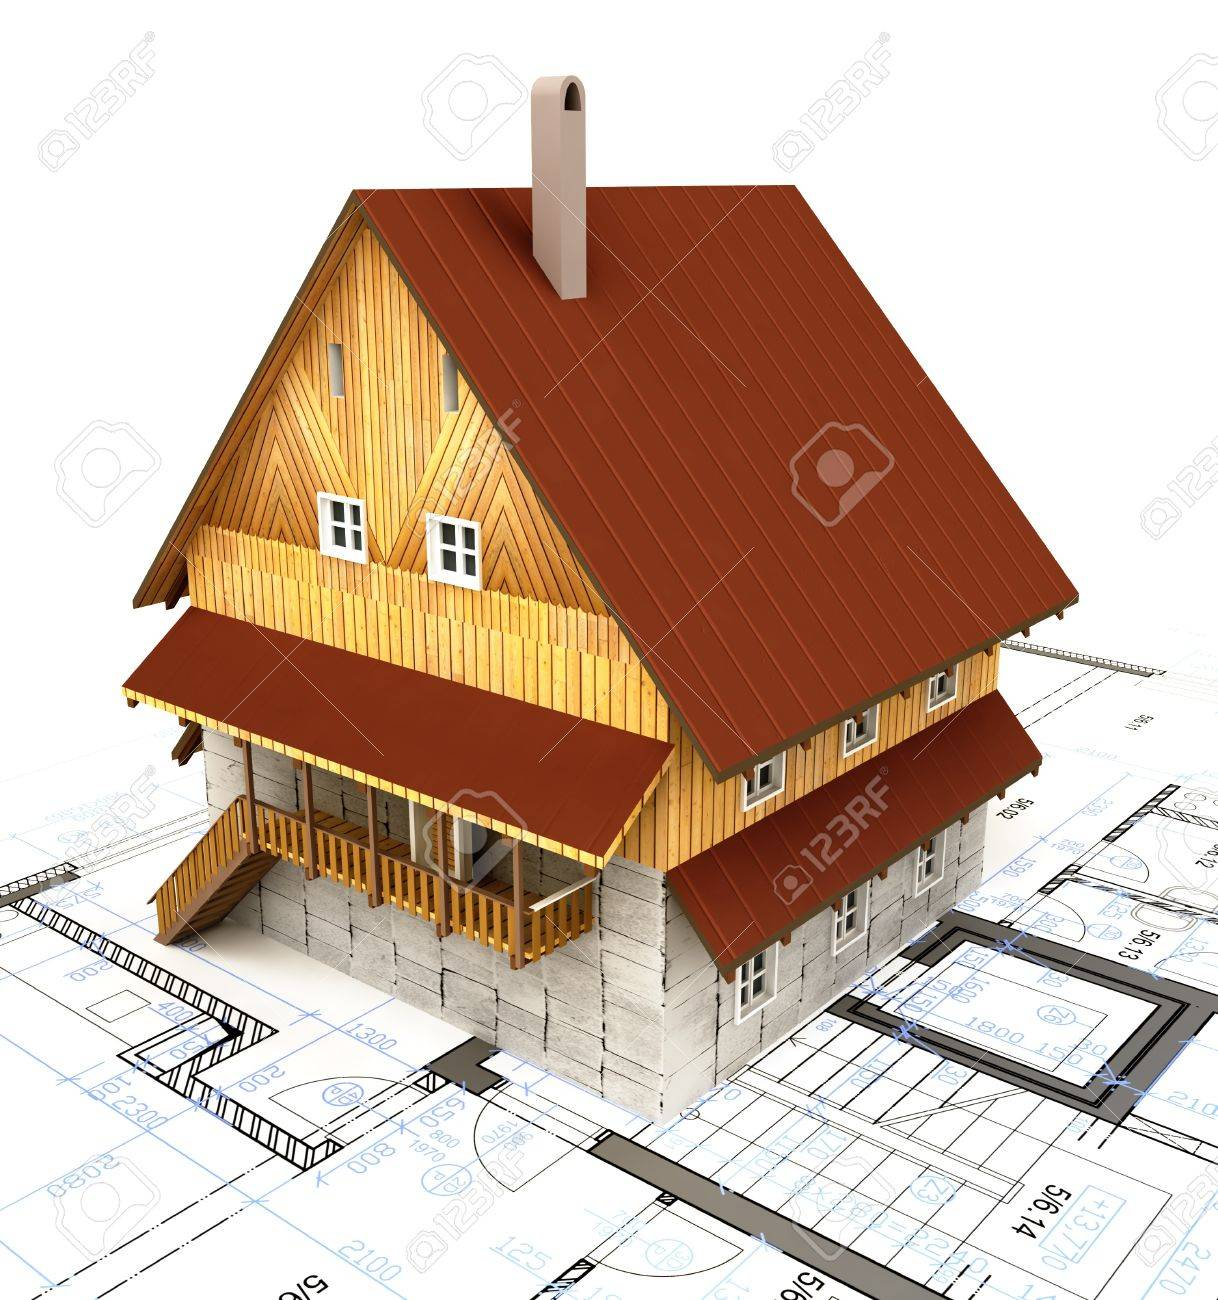 Real Estate Isolated Building House With Layout Plan Illustration Stock  Illustration   17121043